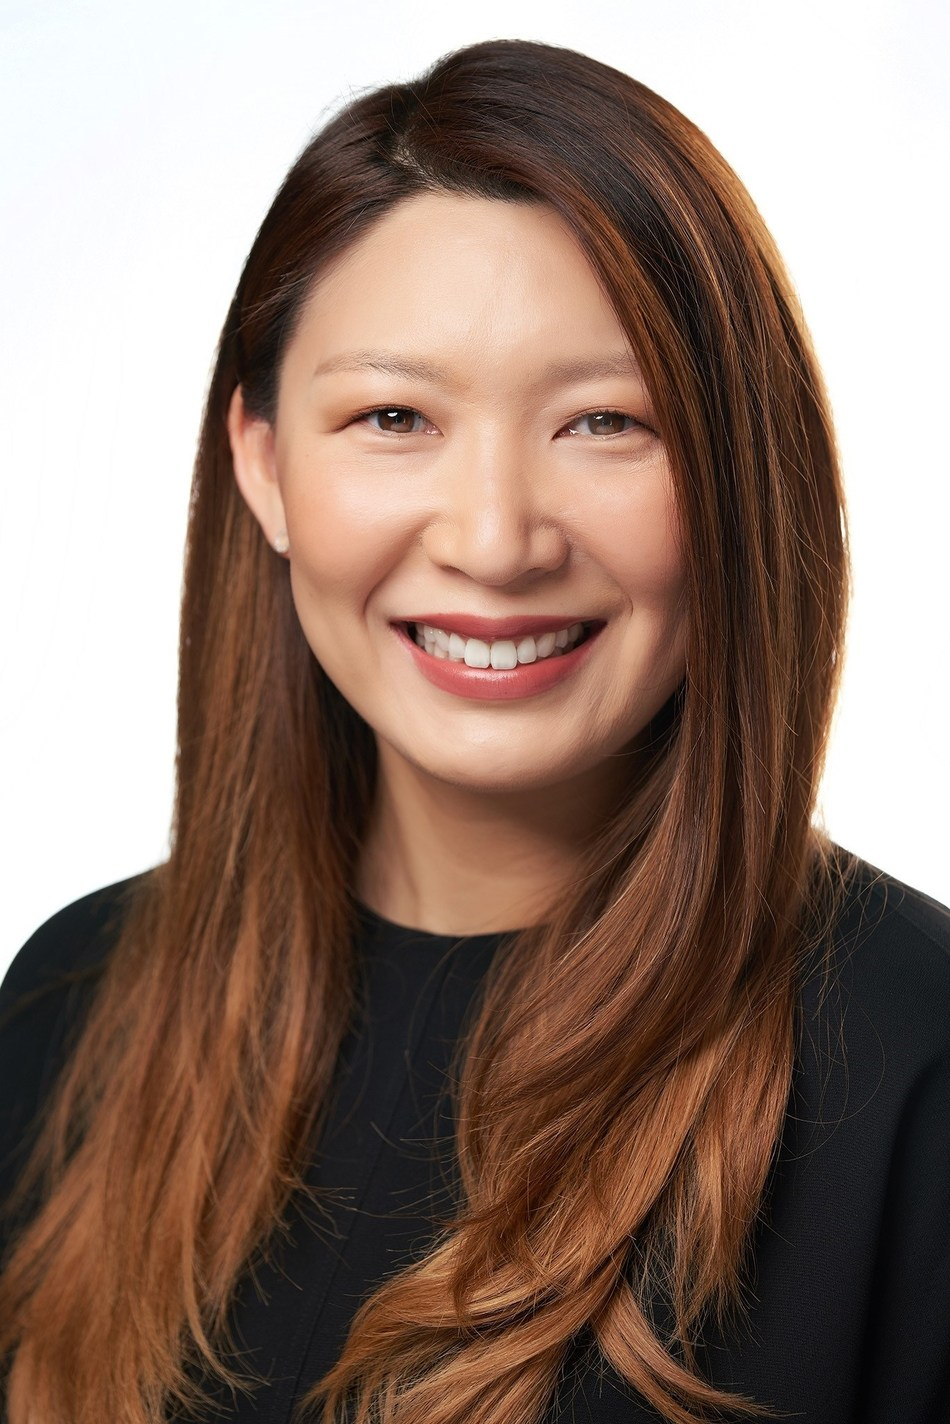 Sarah Cho, Vice President of Clinical Transformation and Health Informatics for Integrated Health Partners